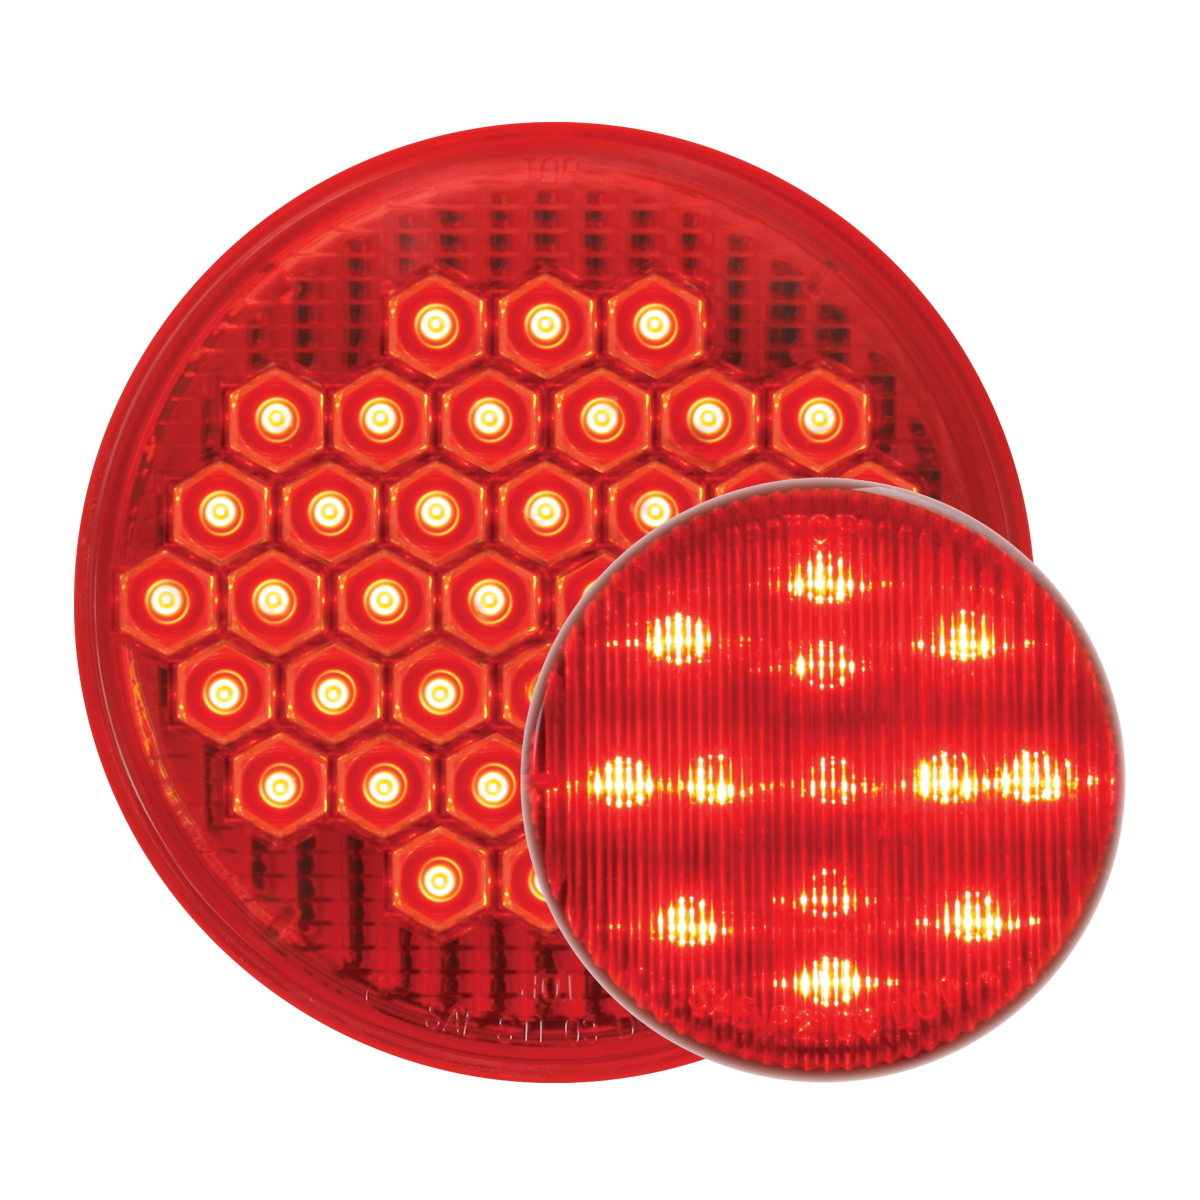 #87700/#79311 High Count LED Flat - Red/Red